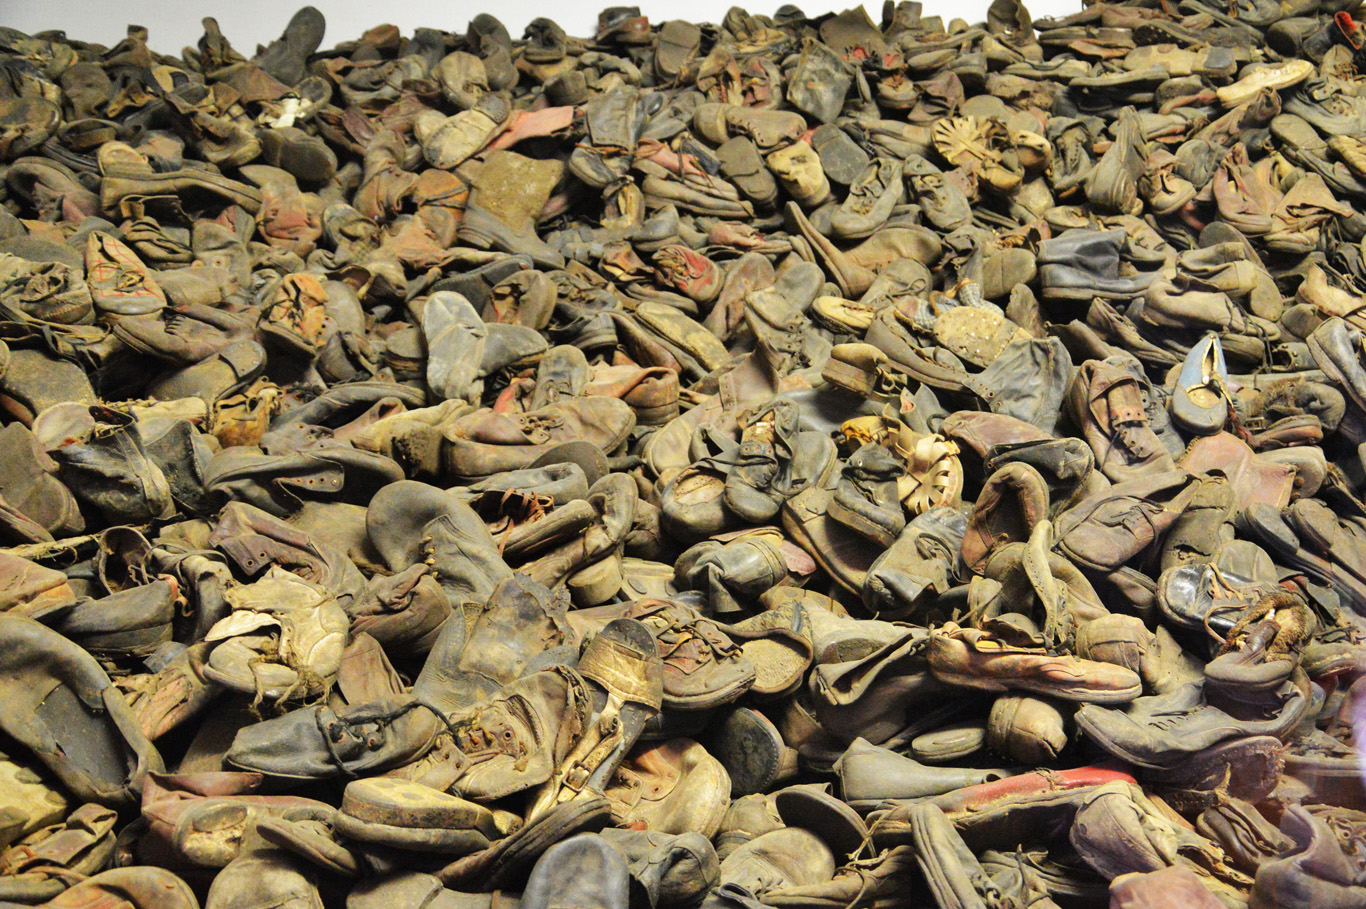 Hundreds of shoes